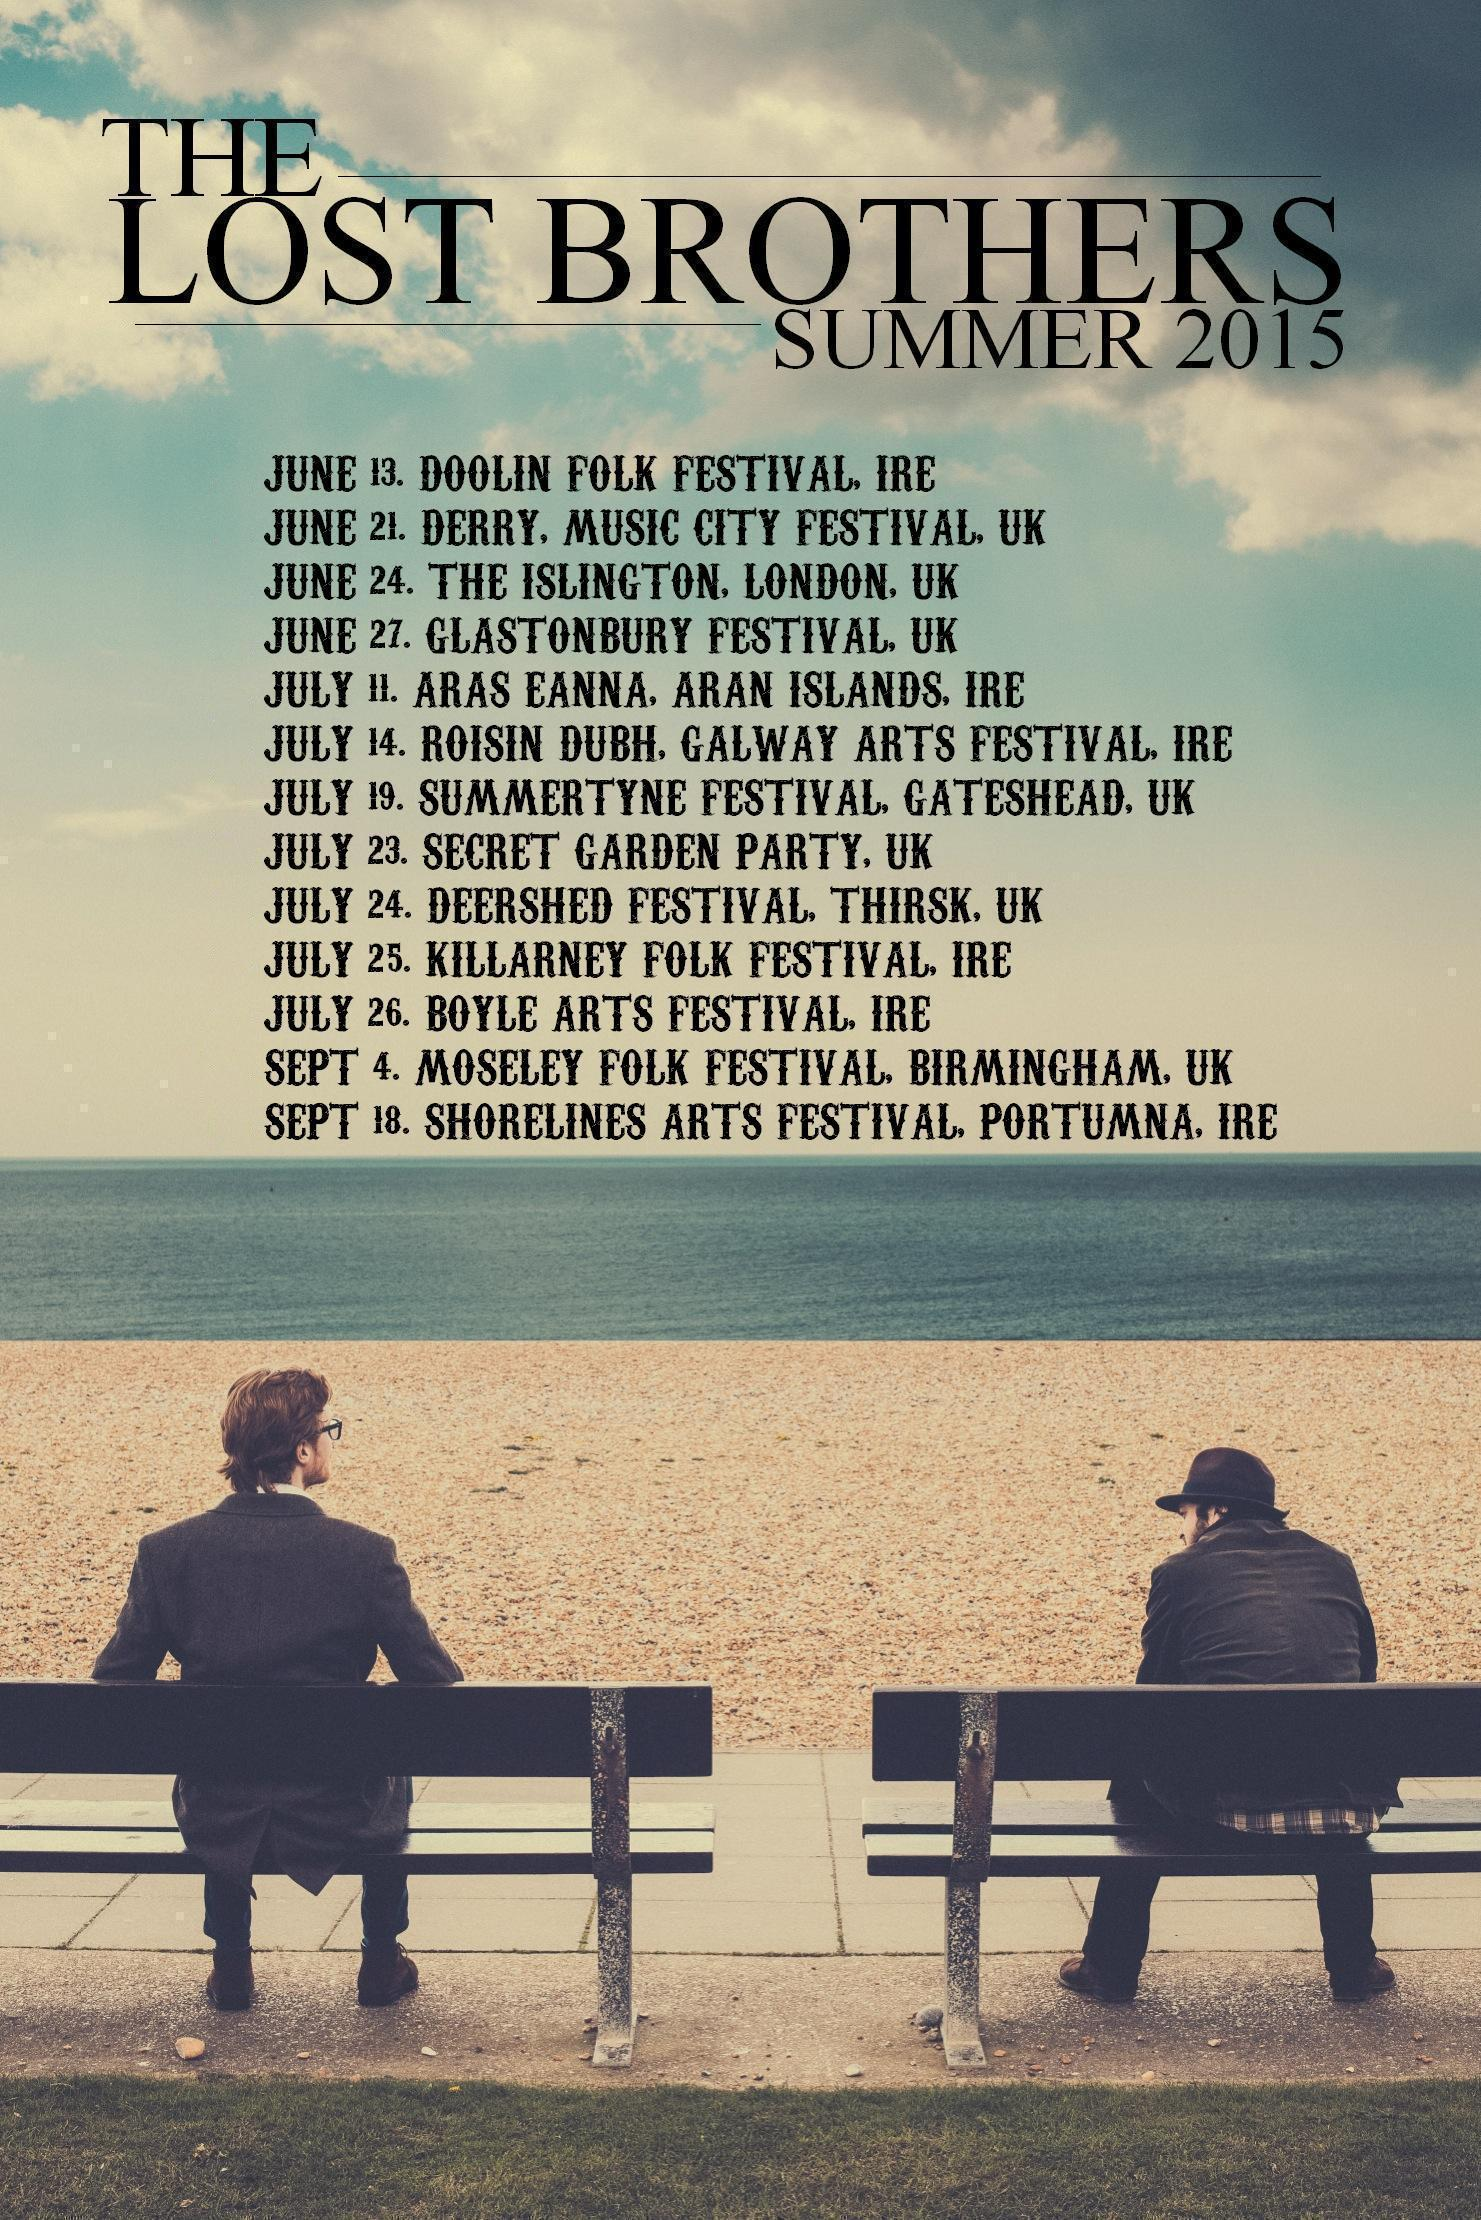 The Lost Brothers Summer 2015 Tour Dates